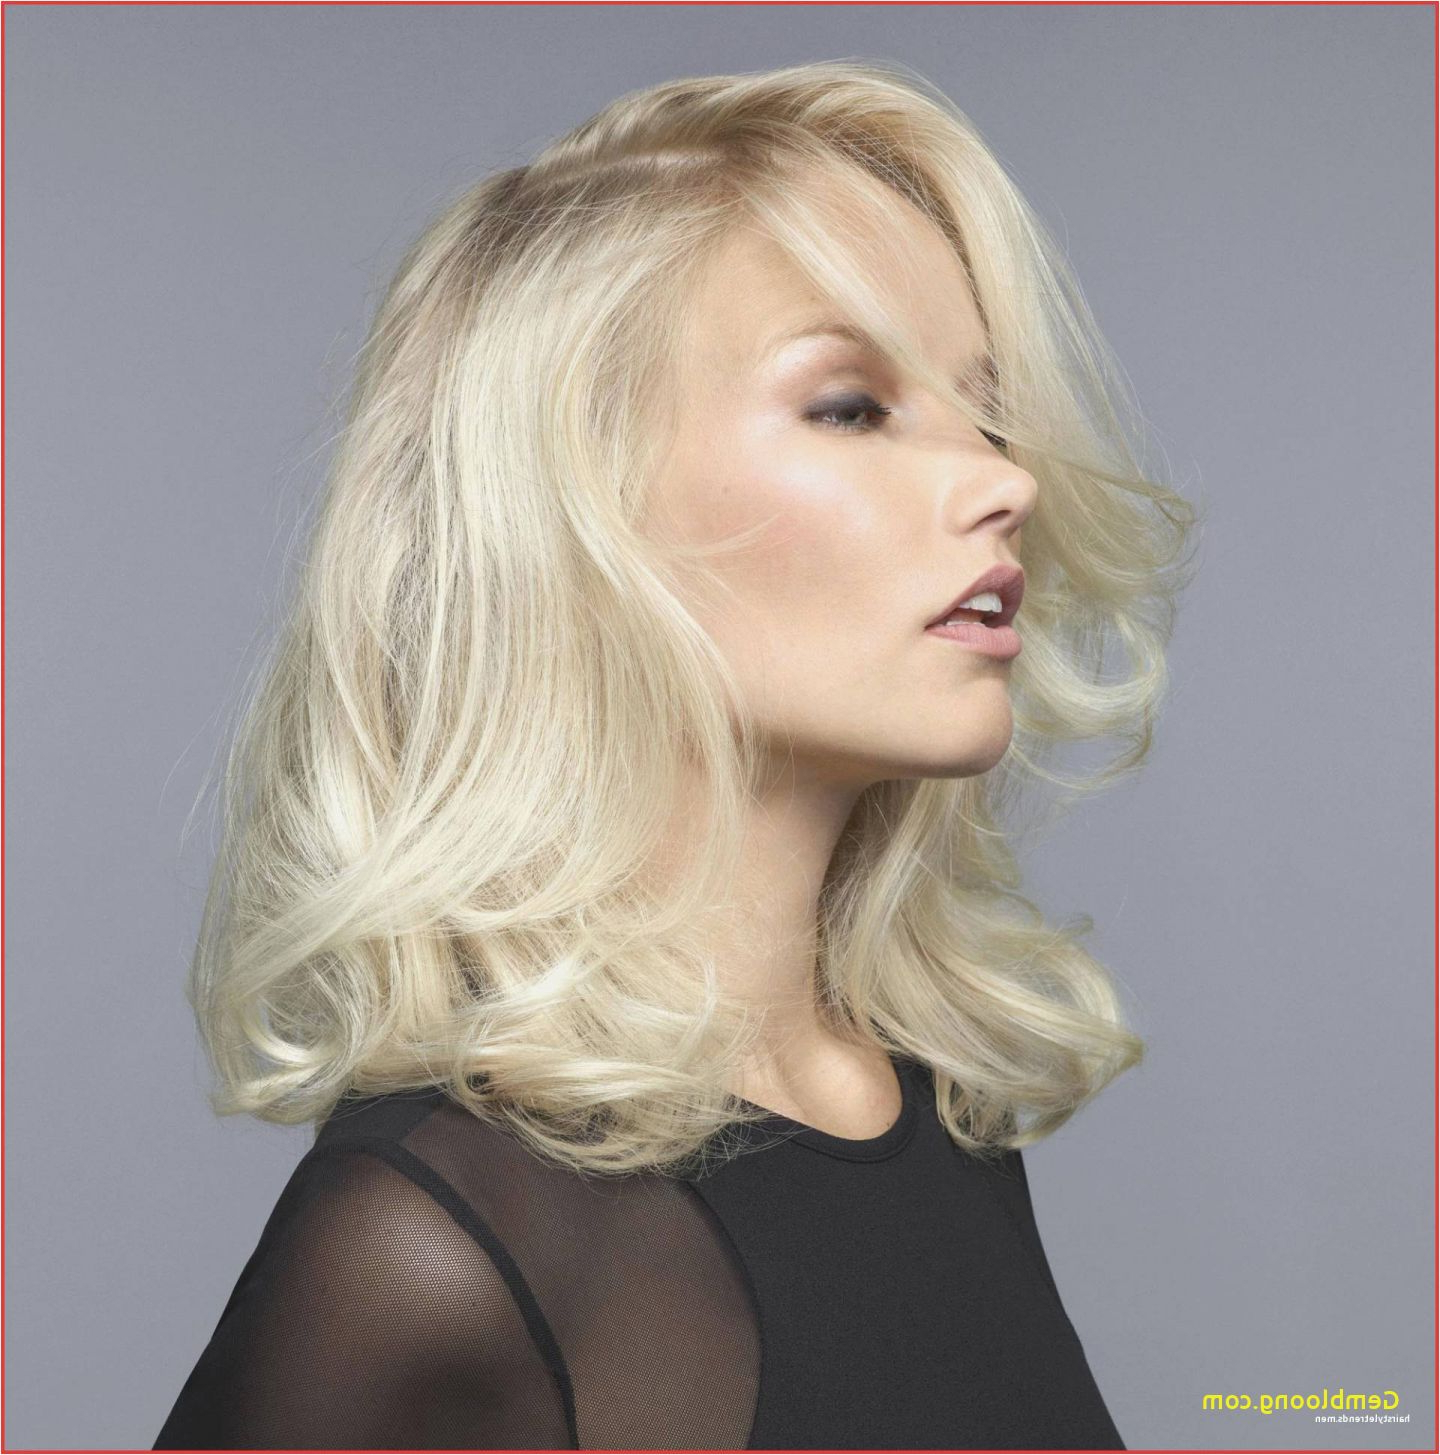 Preferred Medium Hairstyles That Make You Look Younger For ✓ 29 Delicate Short Medium Hairstyles To Make You Look Younger ❗ (View 14 of 20)